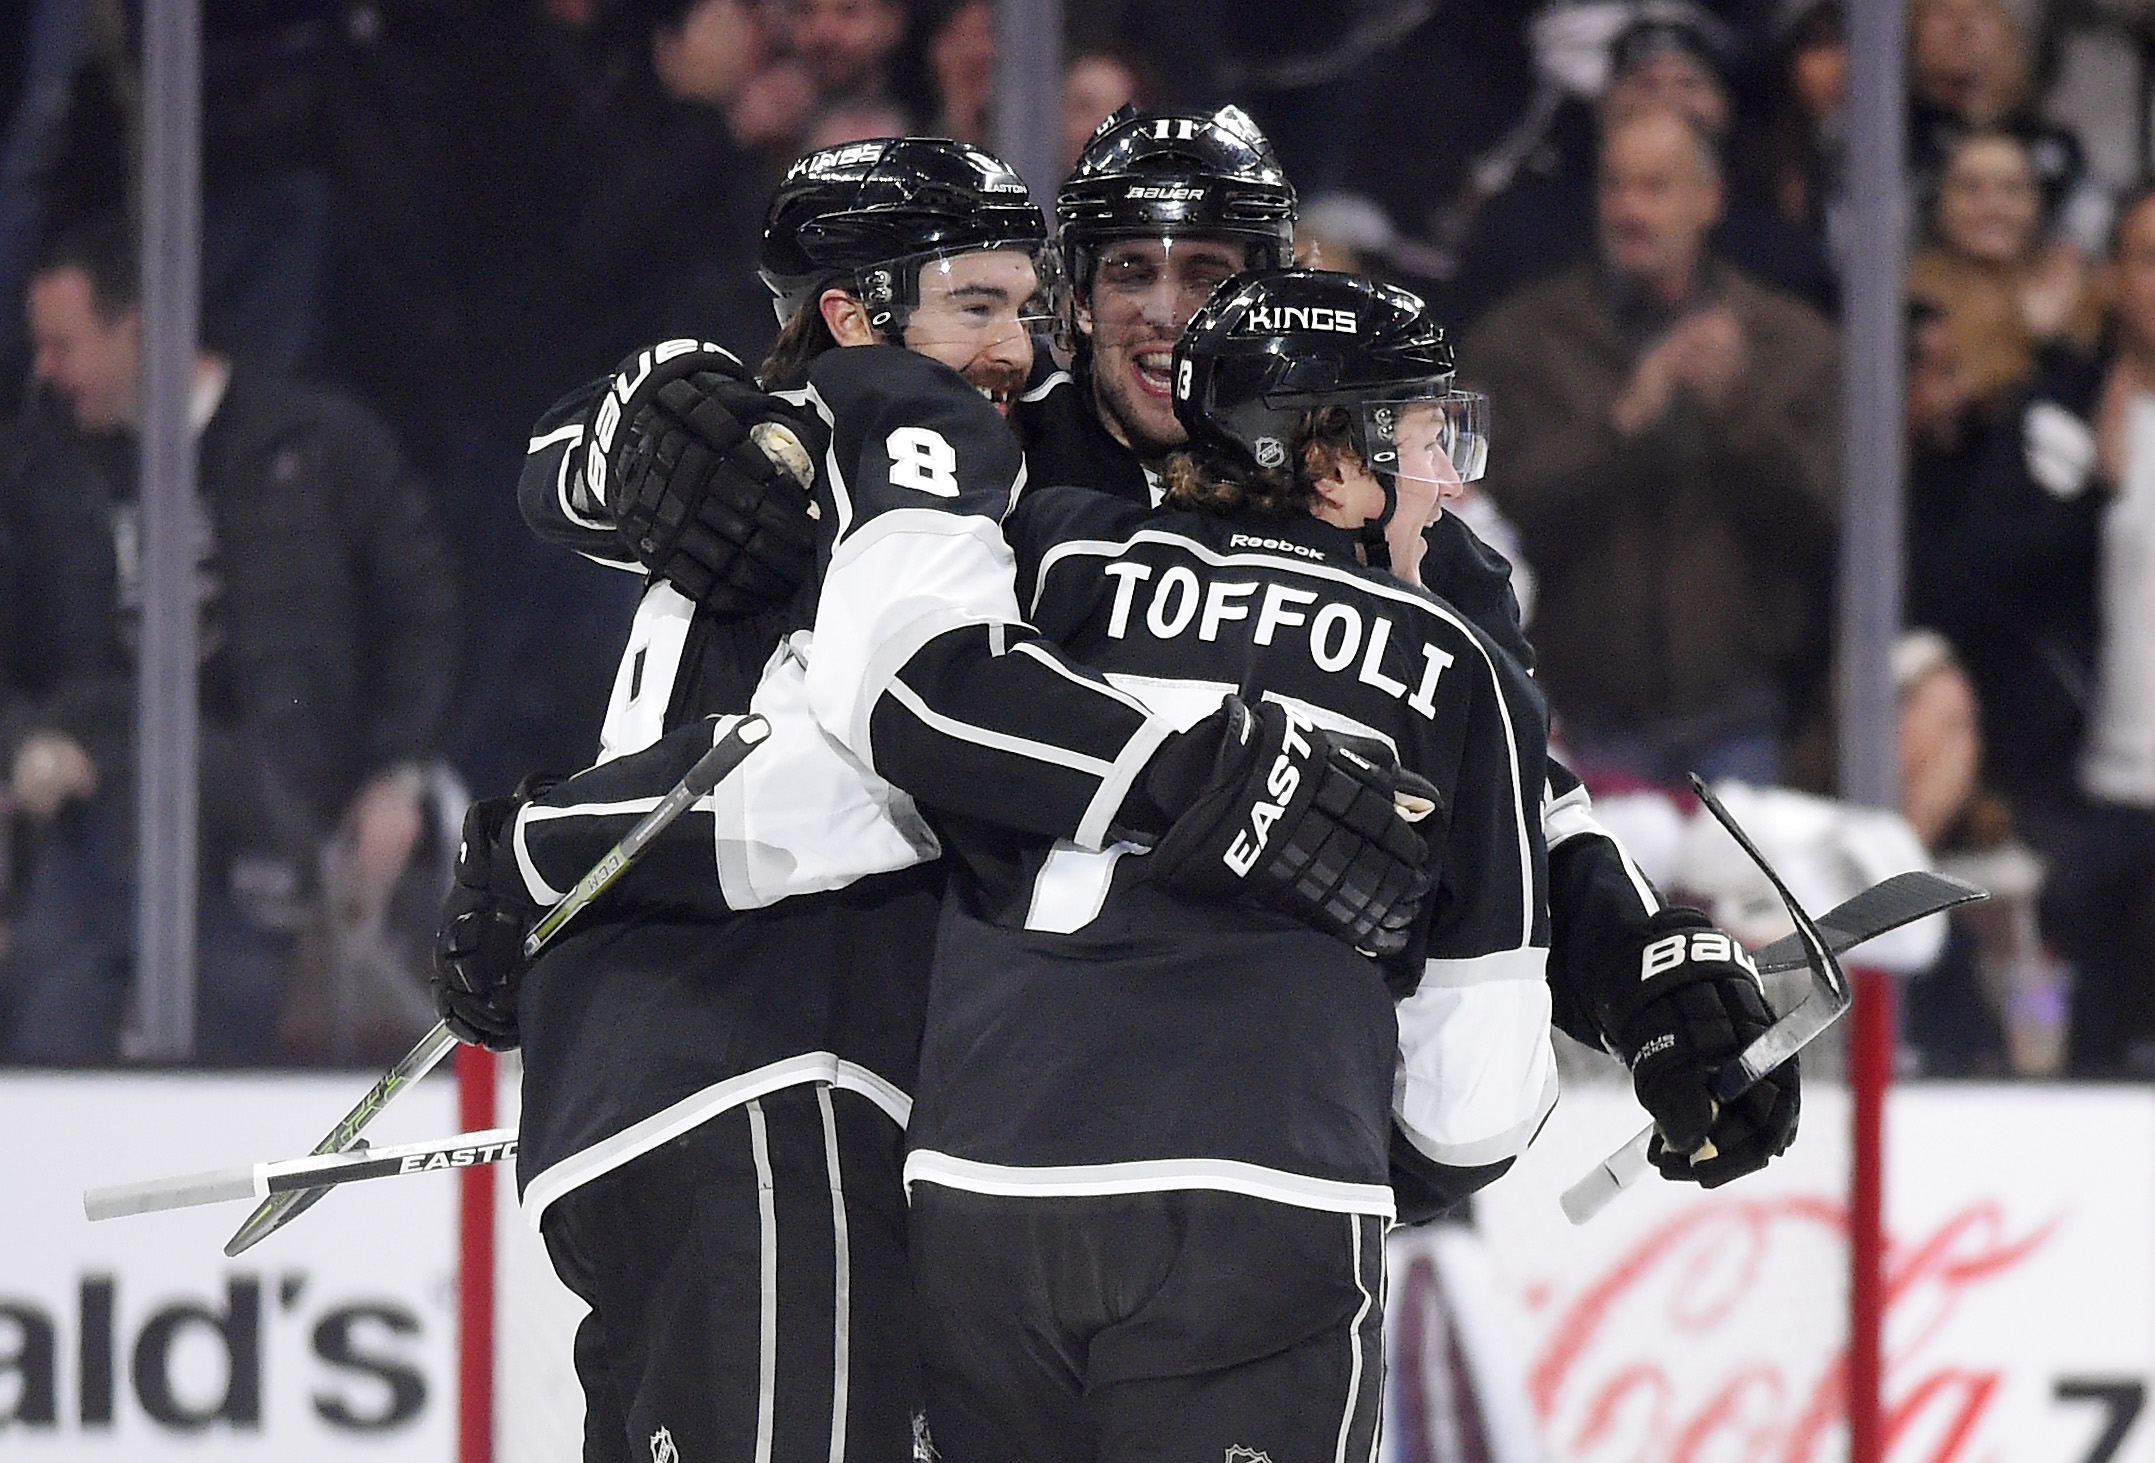 Los Angeles Kings defenseman Drew Doughty, left, celebrates his goal with center Anze Kopitar, center, of Slovenia, and center Tyler Toffoli during the first period of an NHL hockey game against the Colorado Avalanche, Wednesday, Jan. 27, 2016, in Los Ang